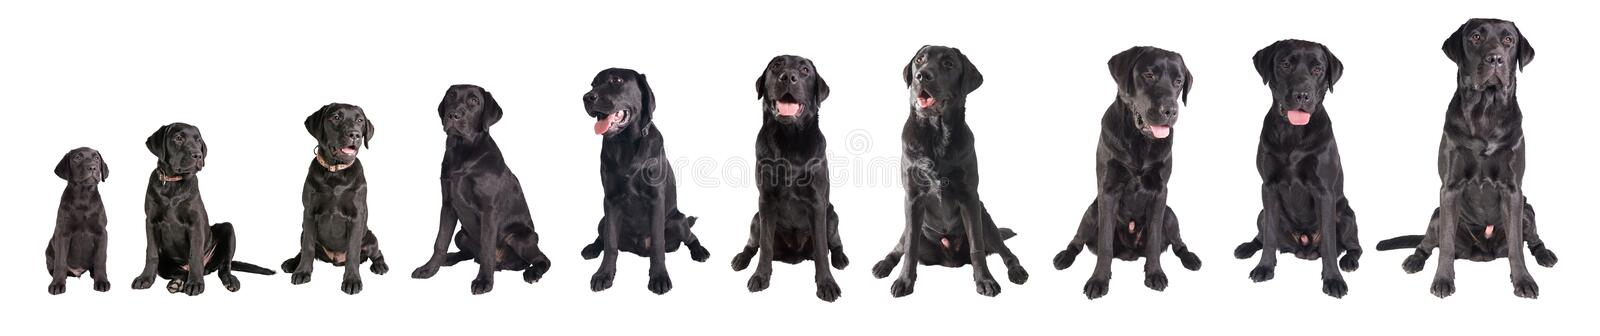 Black labrador retriever growing. 10 Month in the live of a black Labrador retriever growing up isolated on White Background stock images